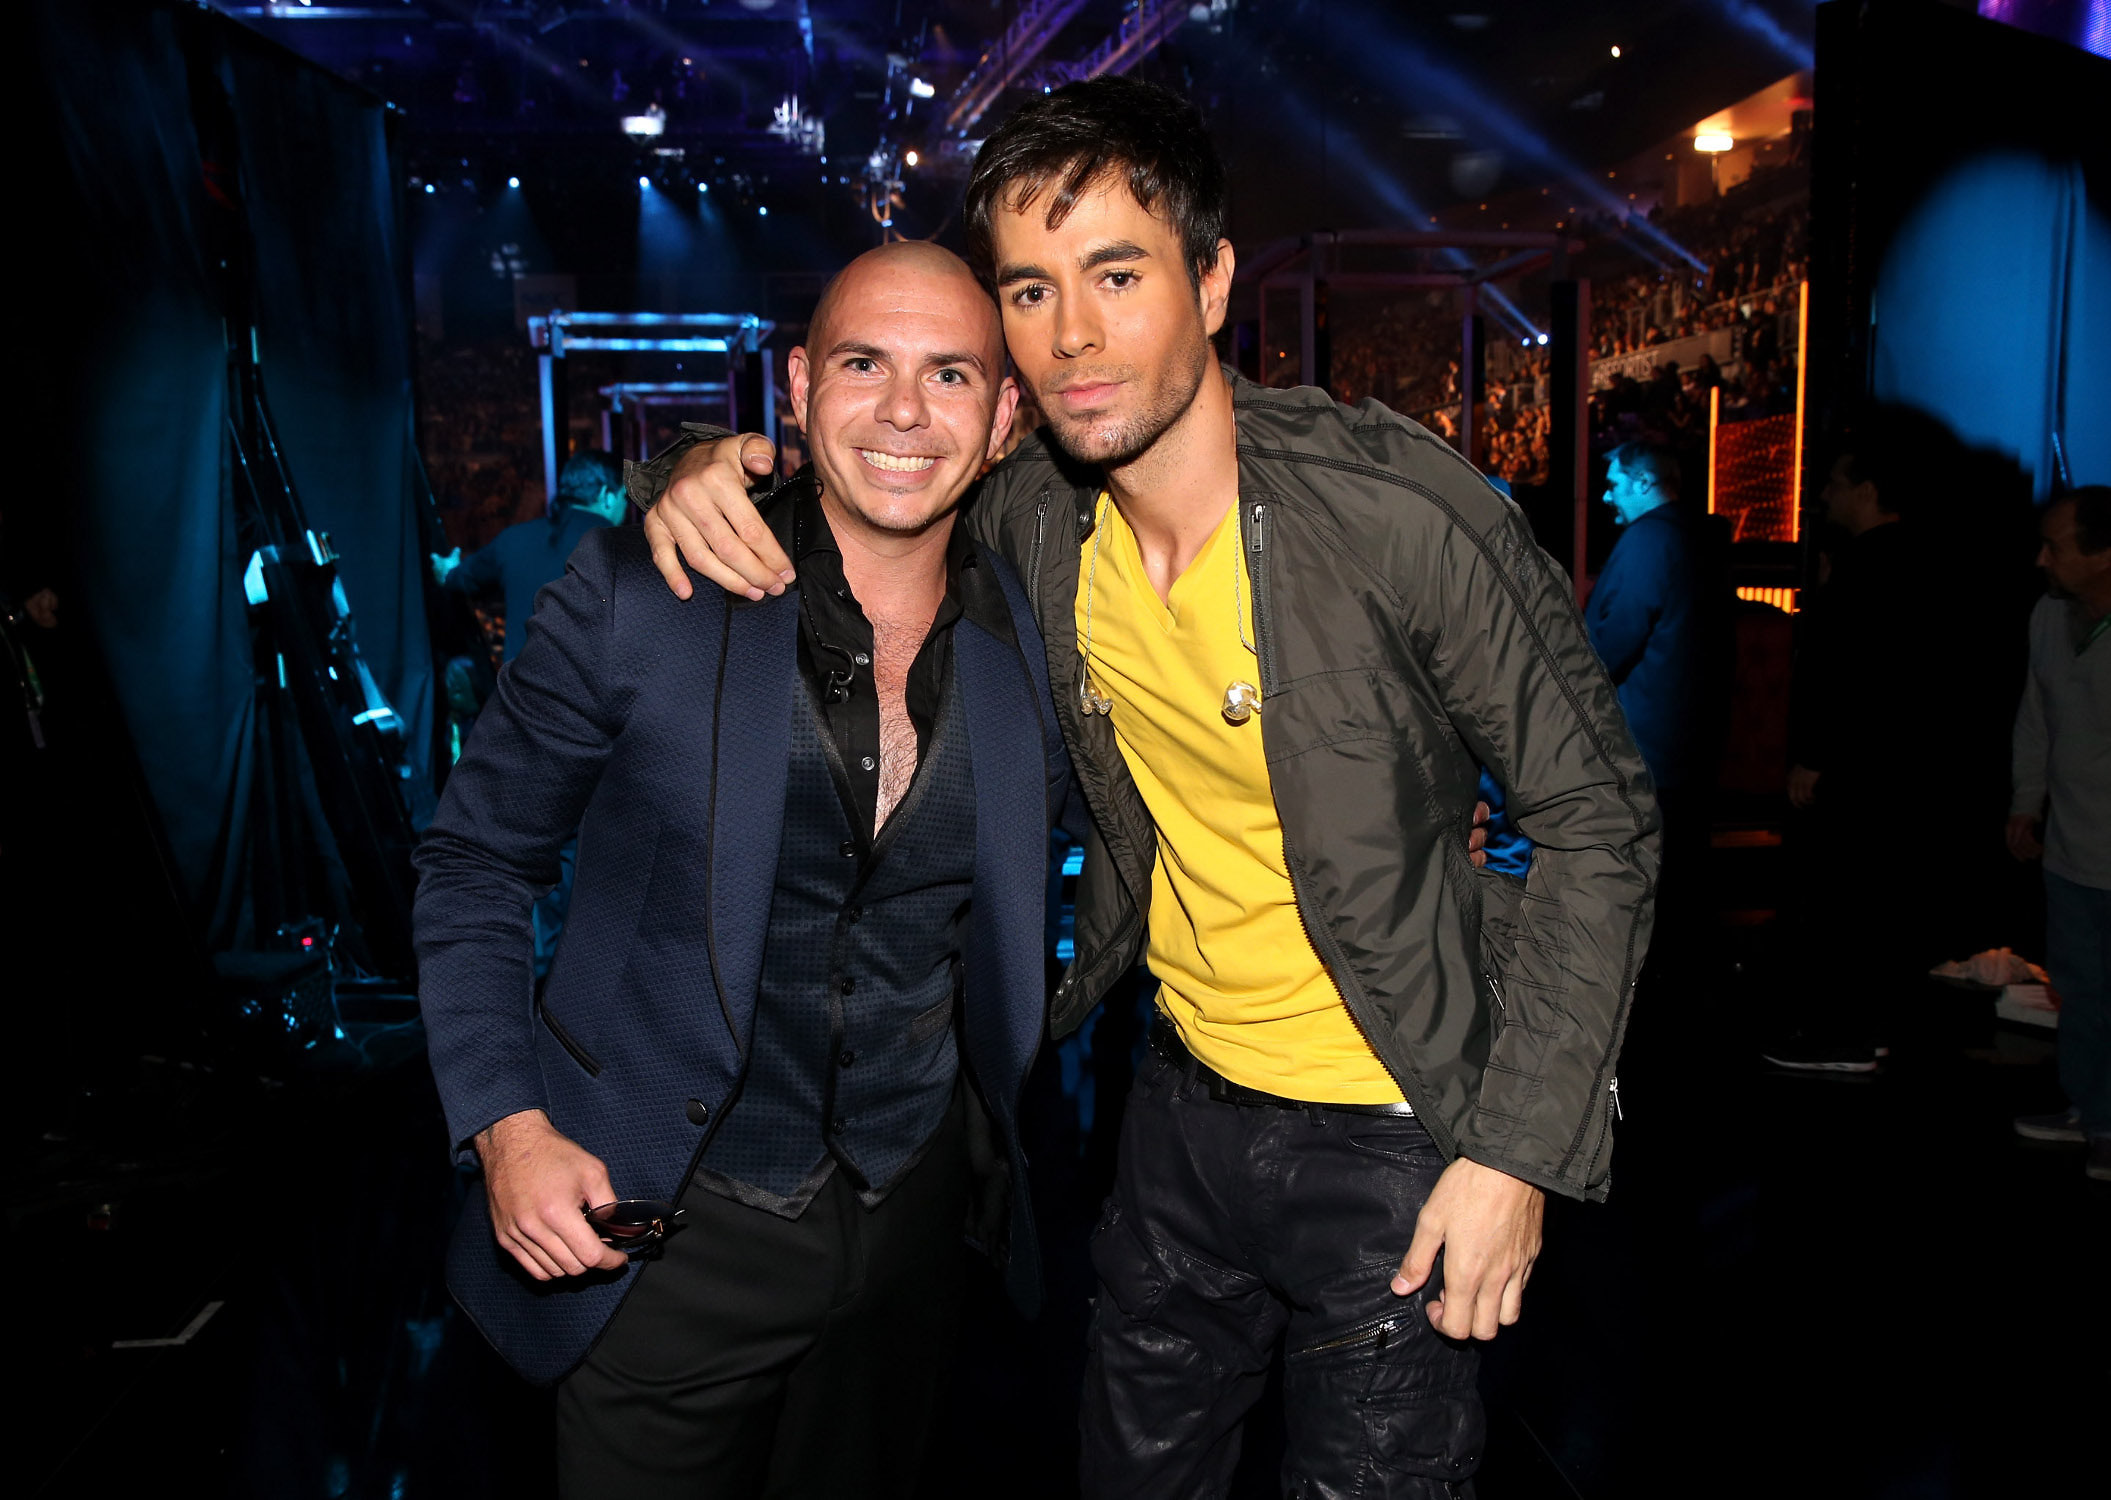 pose backstage during the 14th Annual Latin GRAMMY Awards held at the Mandalay Bay Events Center on November 21, 2013 in Las Vegas, Nevada.